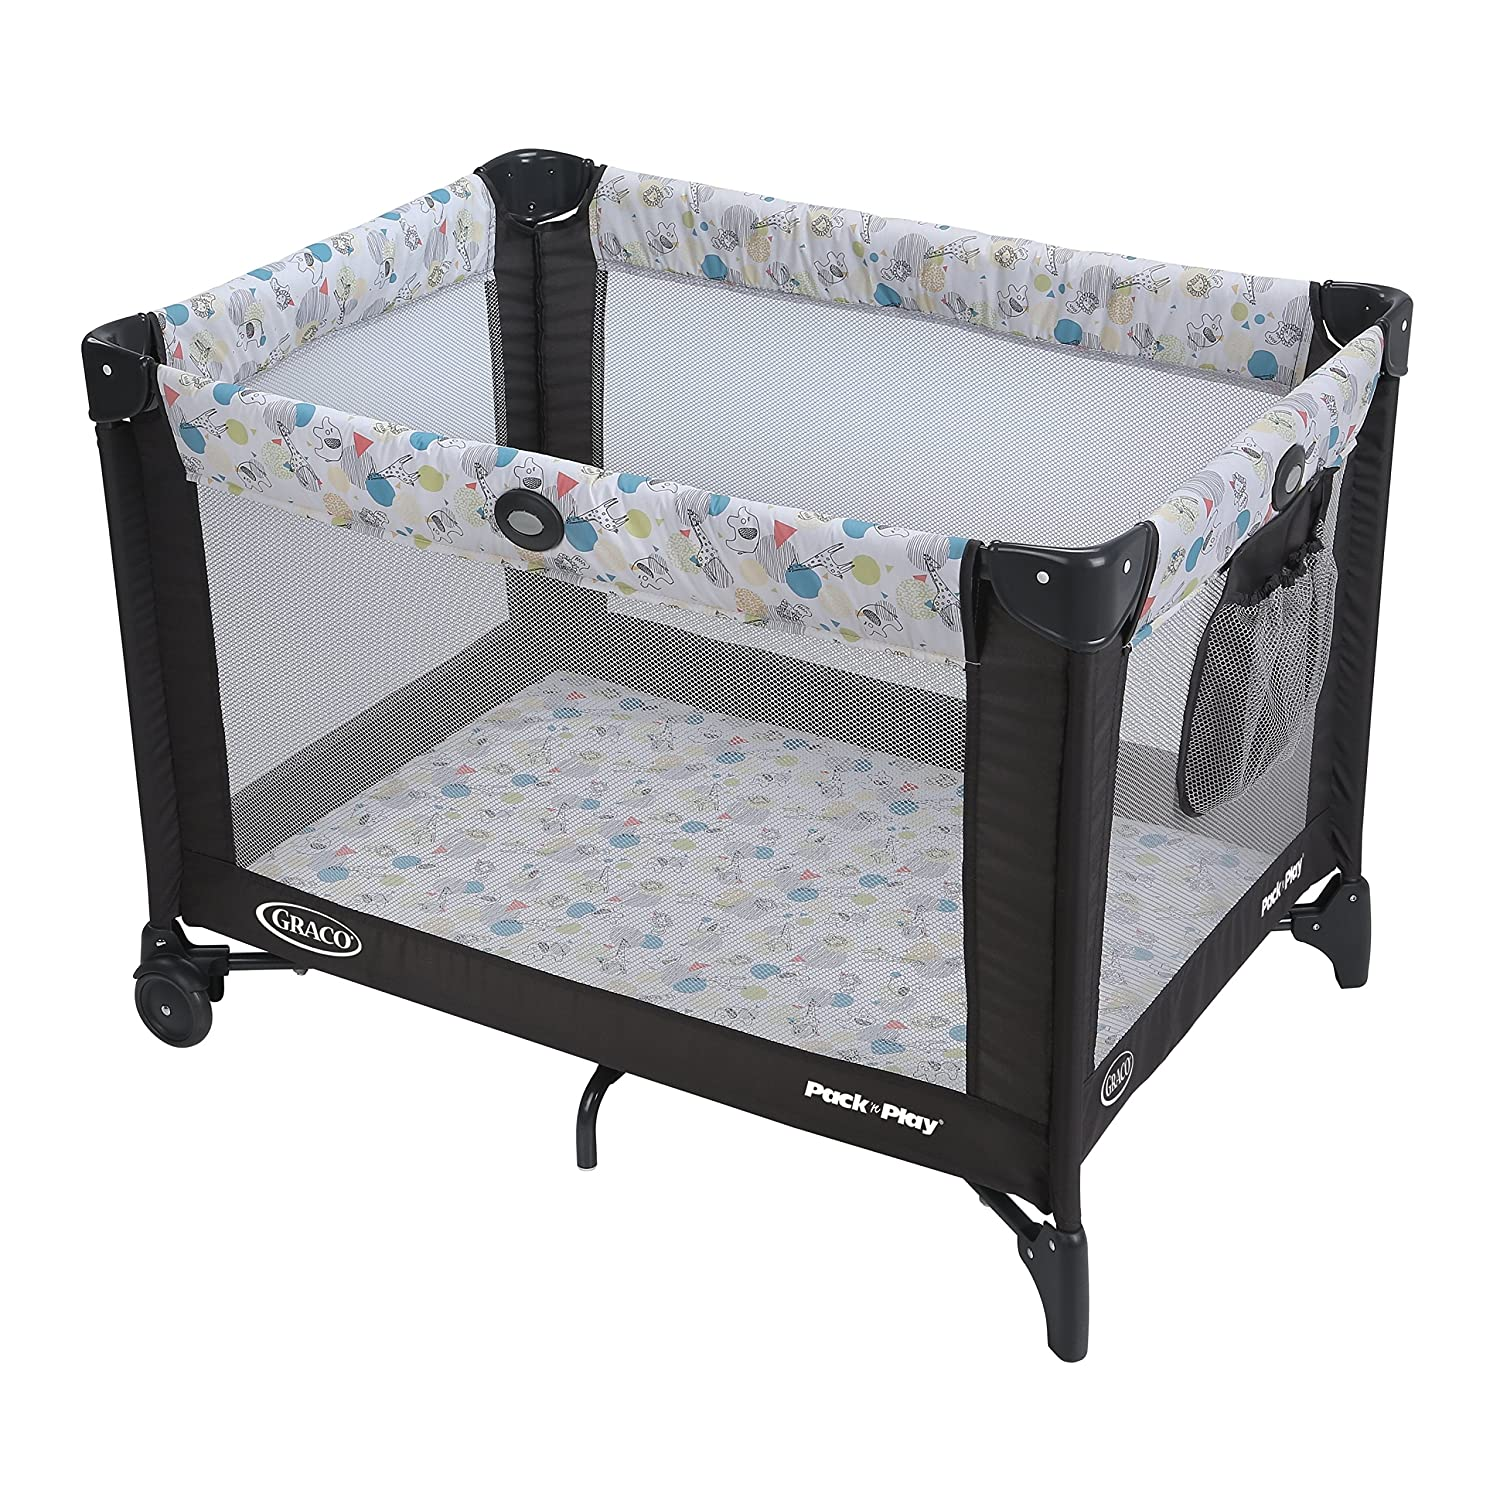 Graco Pack & Play Compact Fold Portable Playard